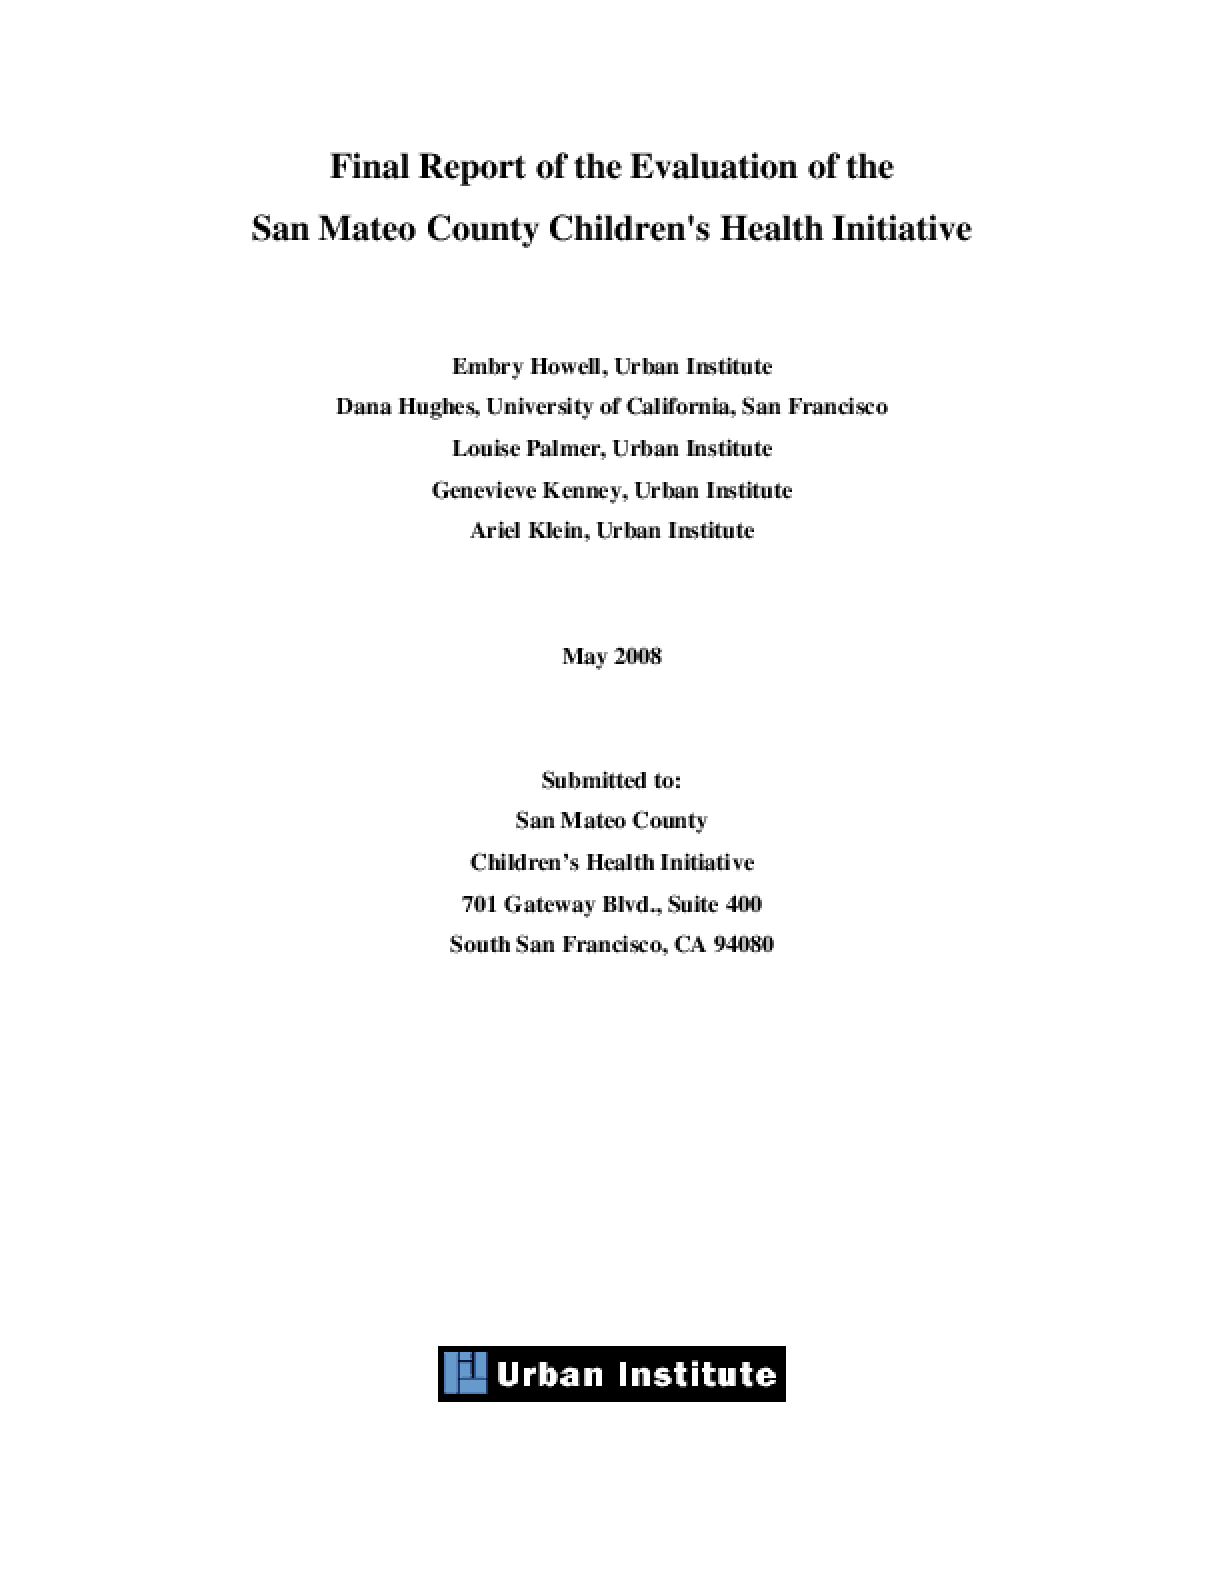 Final Report of the Evaluation of the San Mateo County Children's Health Initiative